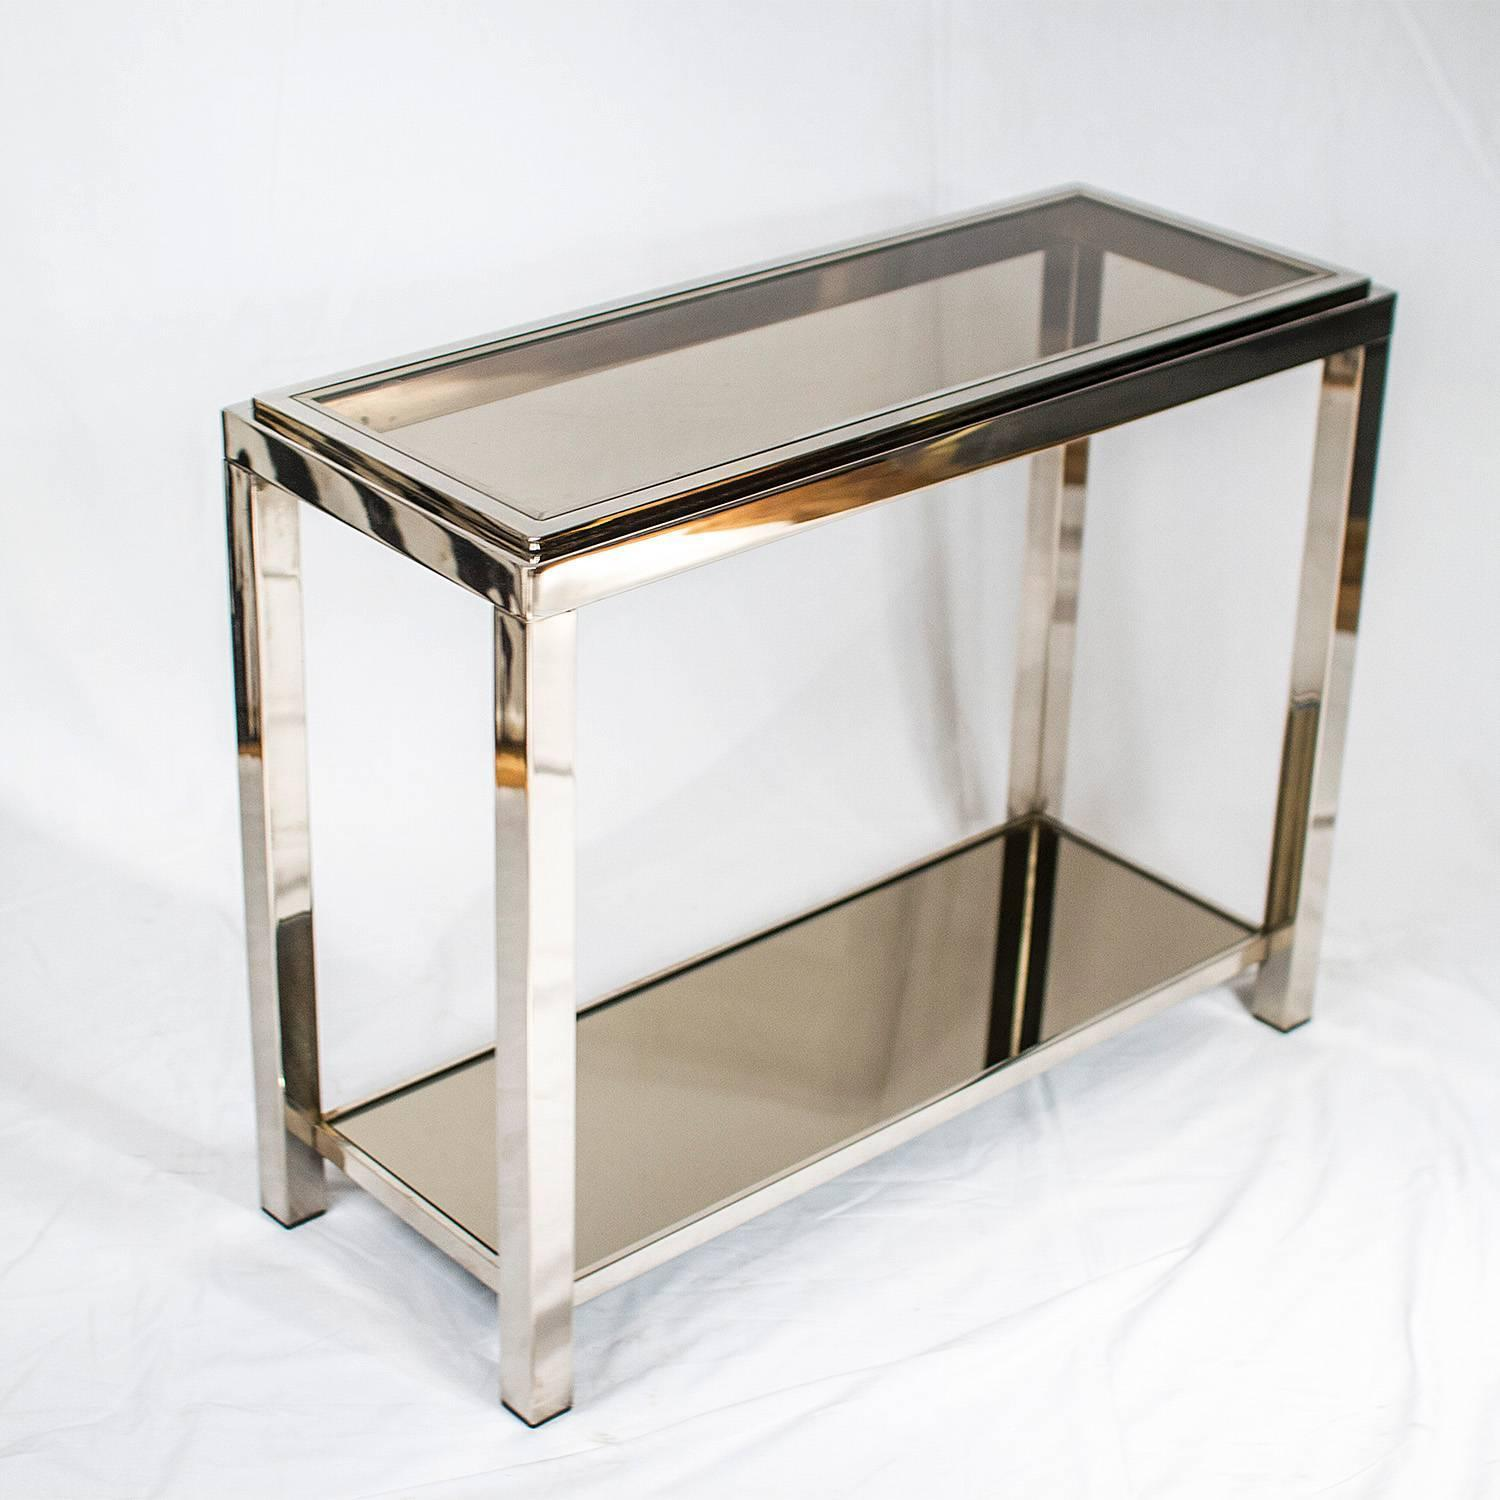 chrome console table  joevin ortjens galerie - sold chrome console table chromeconsolez chromeconsolezchromeconsolez chromeconsolez